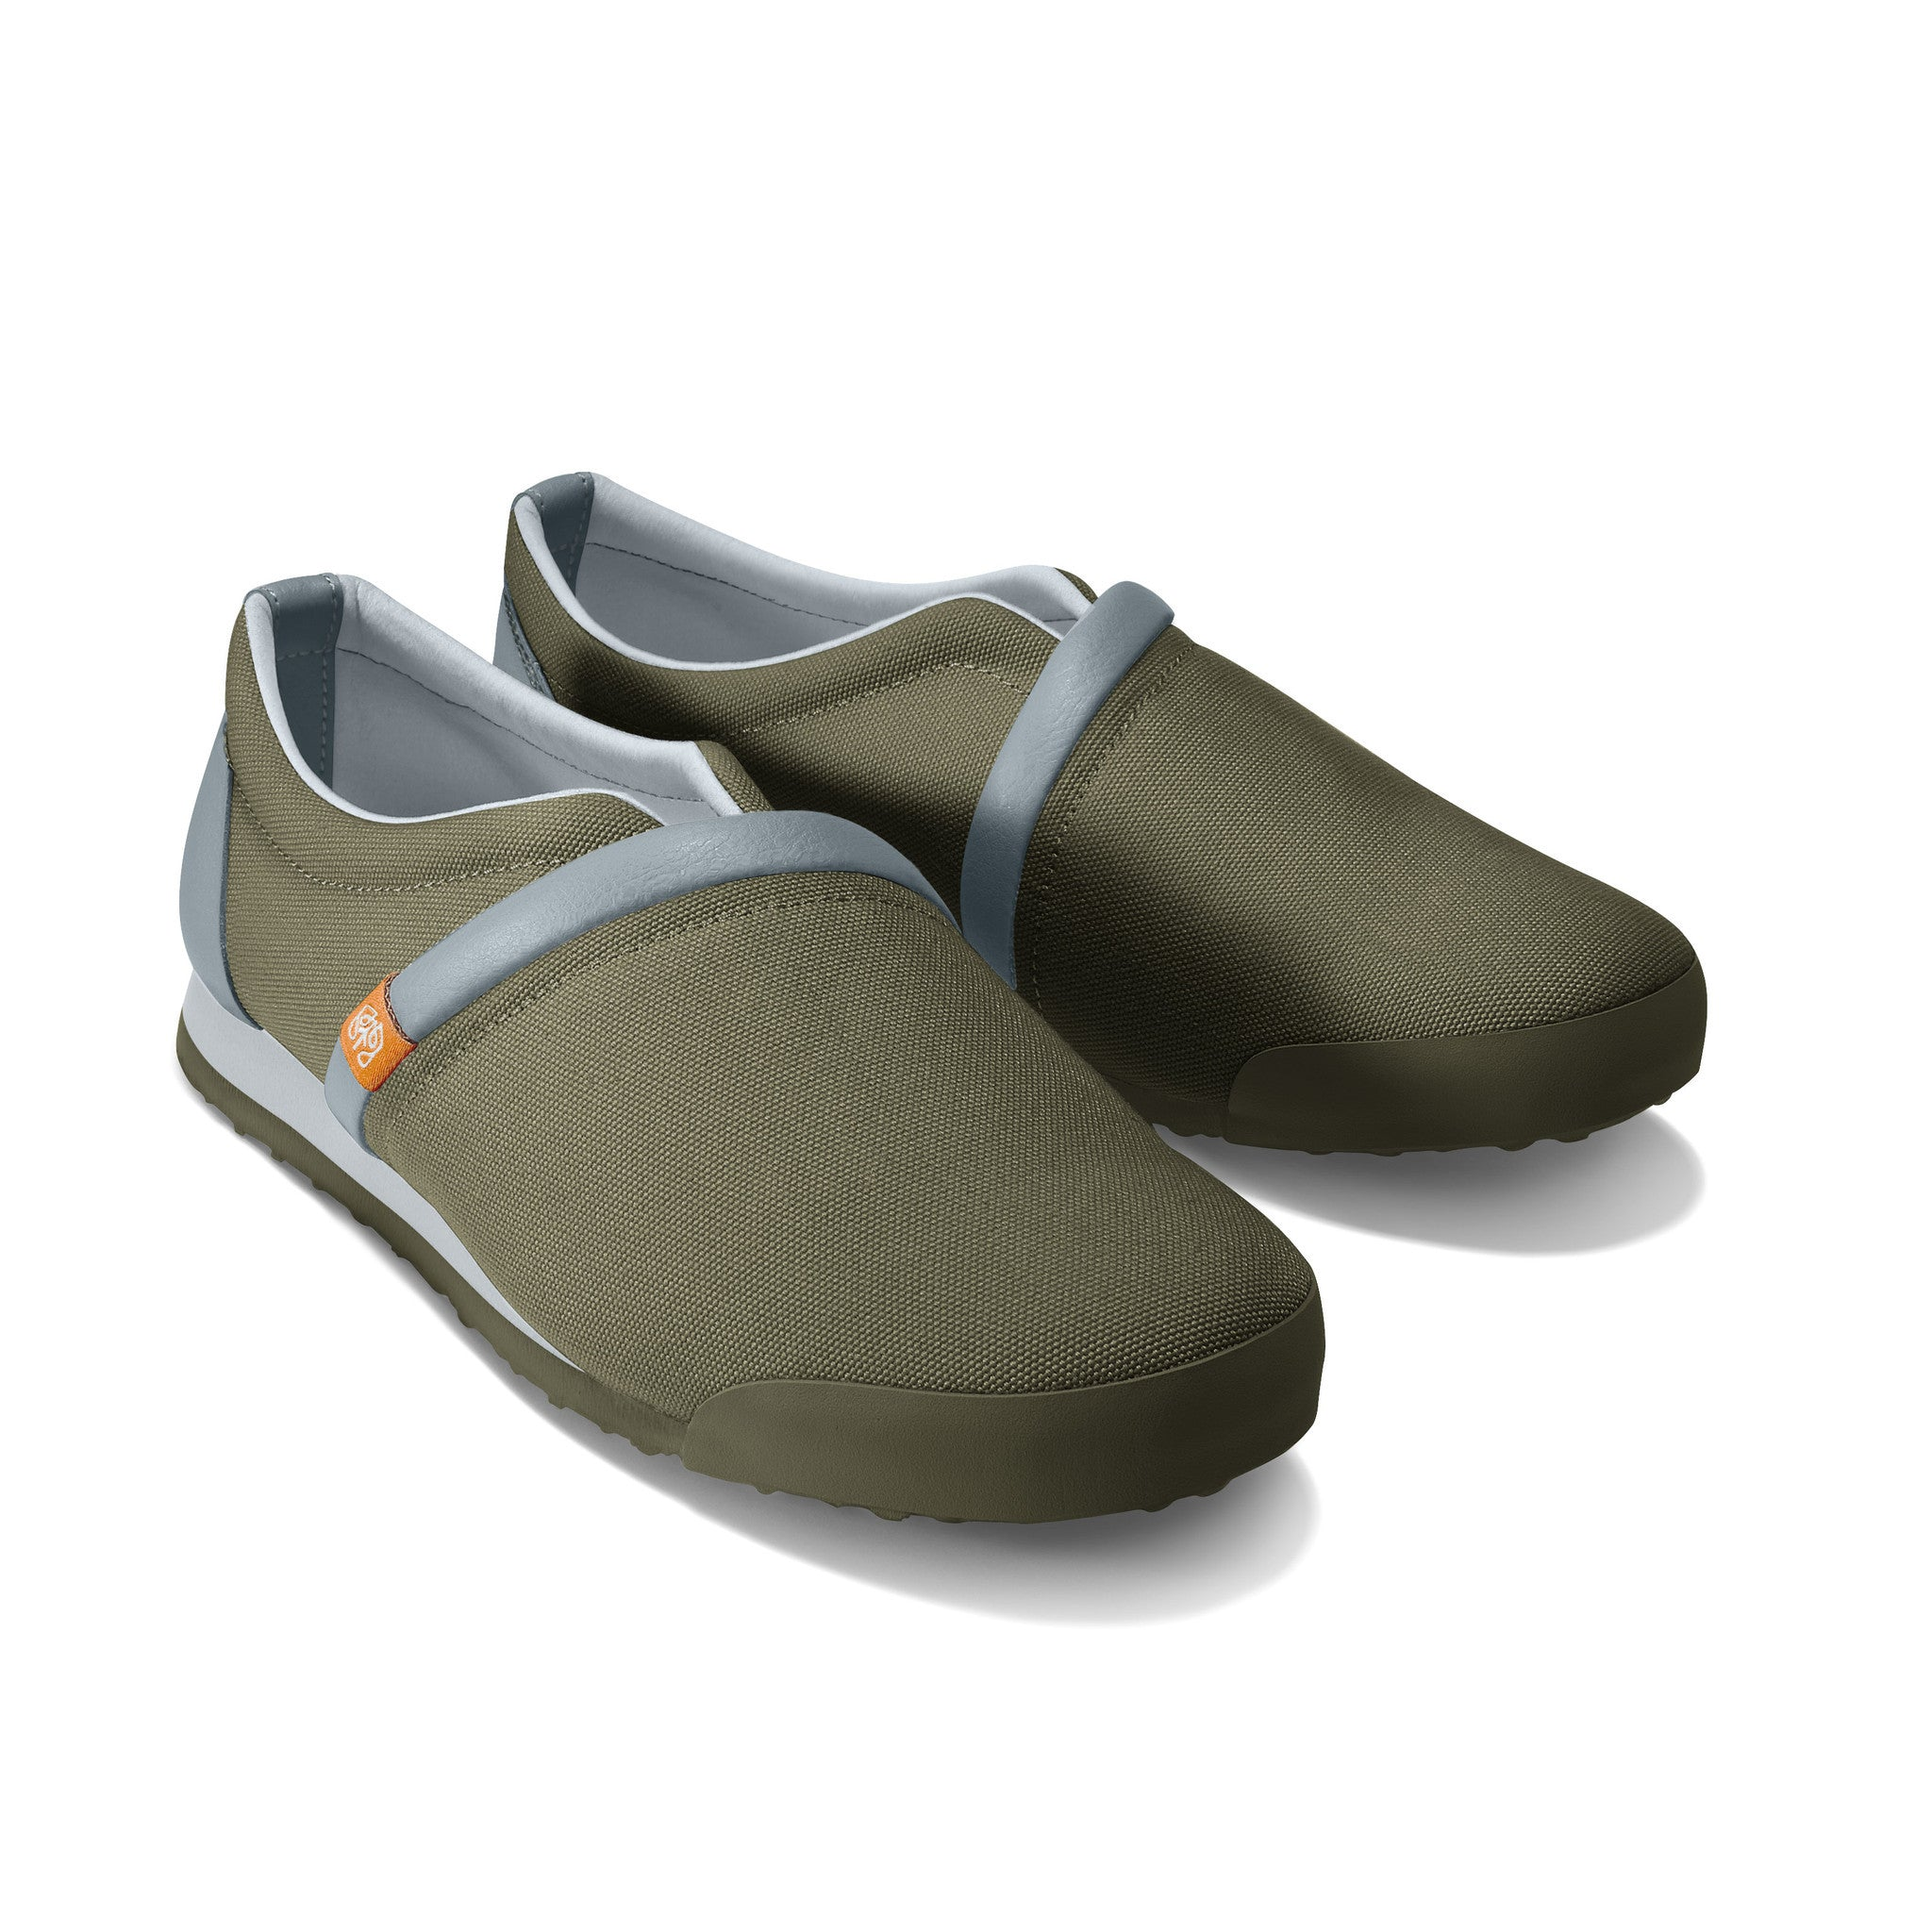 Military_Olive - Common Ground Footwear Shoes Right Perspective View